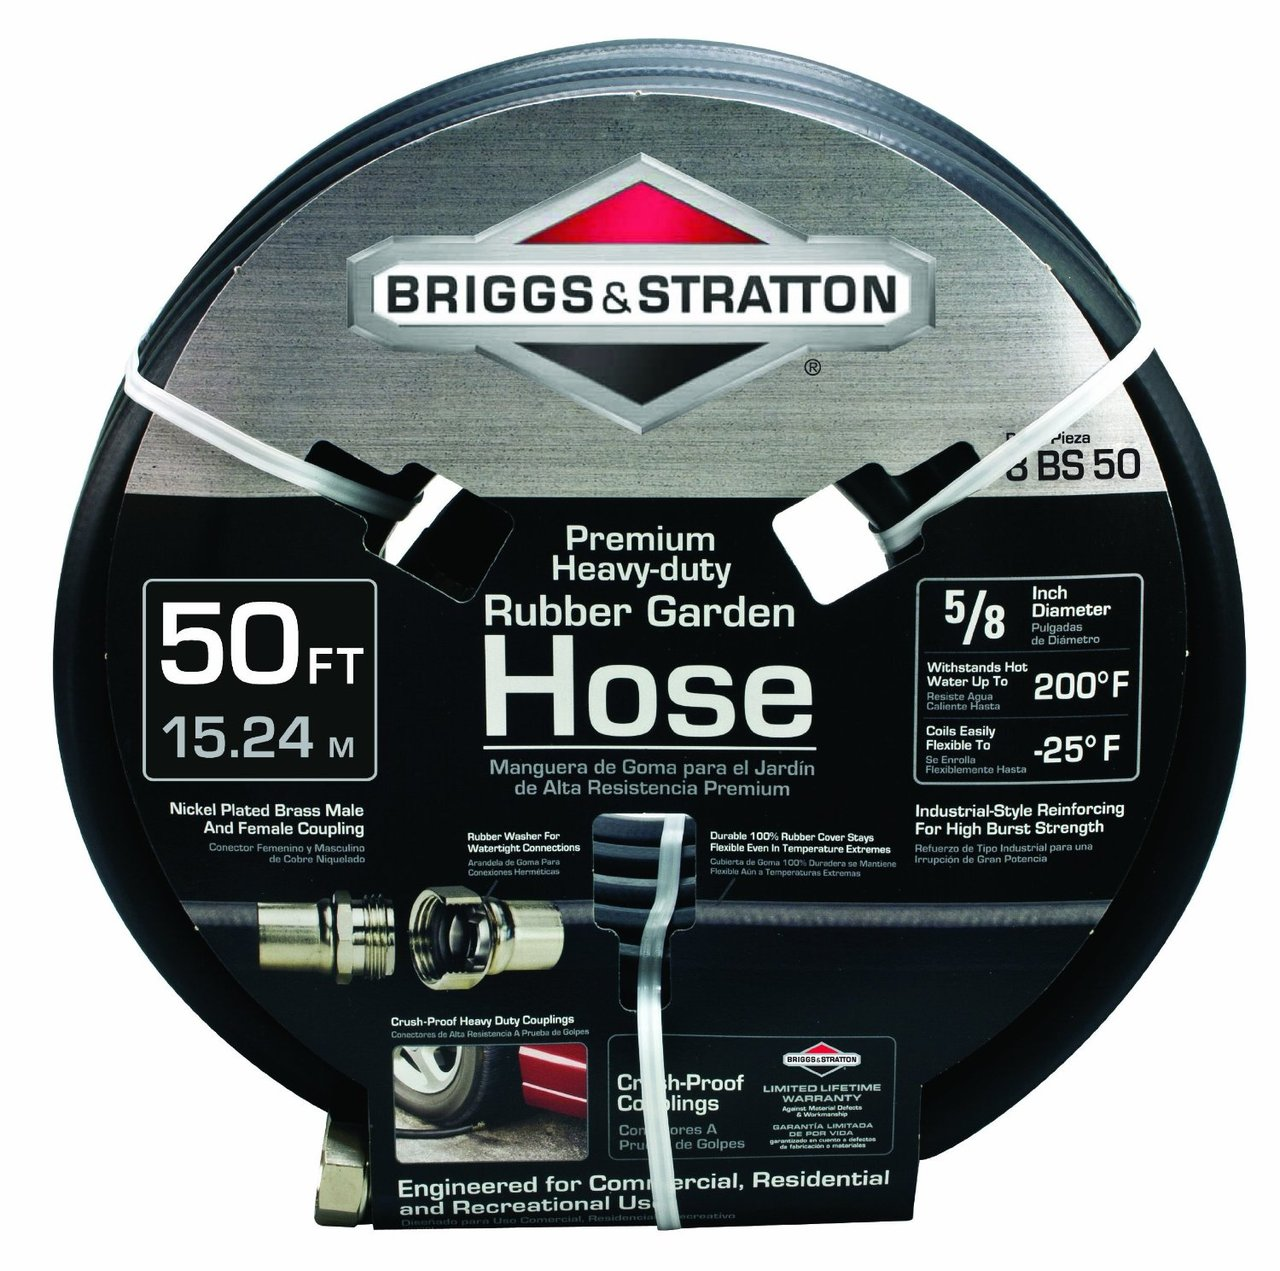 Briggs & Stratton 8BS50 50-Foot Premium Heavy-Duty Rubber Garden Hose by Briggs and Stratton